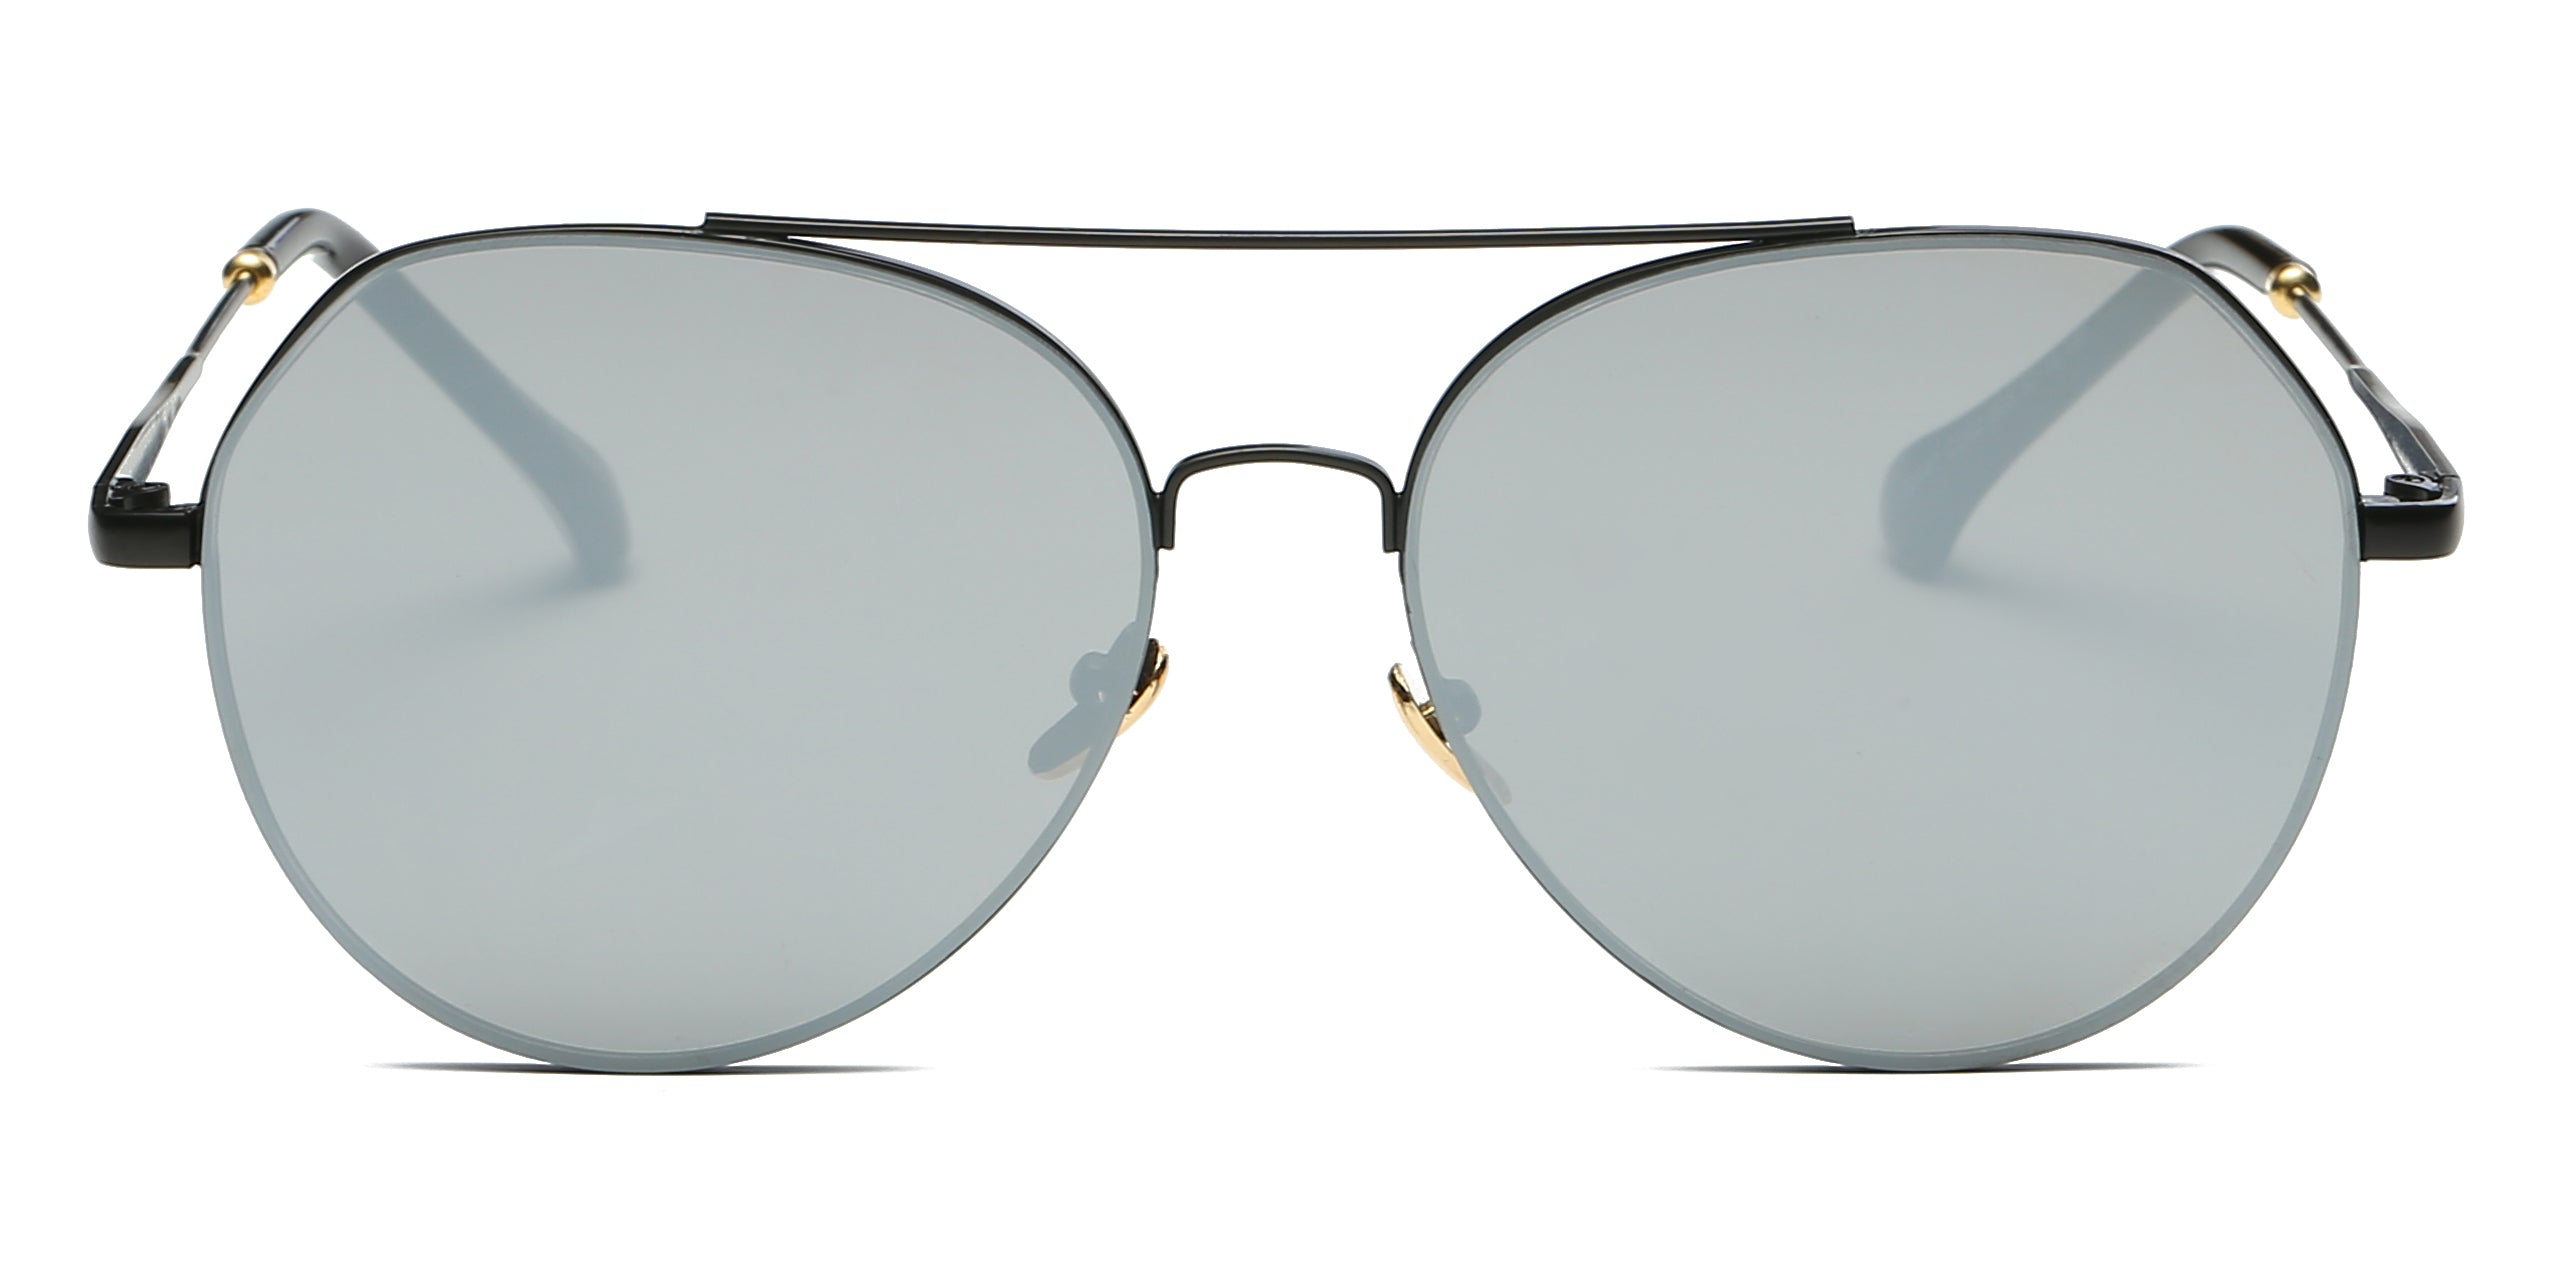 Akcessoryz-Unisex aviator sunglasses with silver lens and black frame